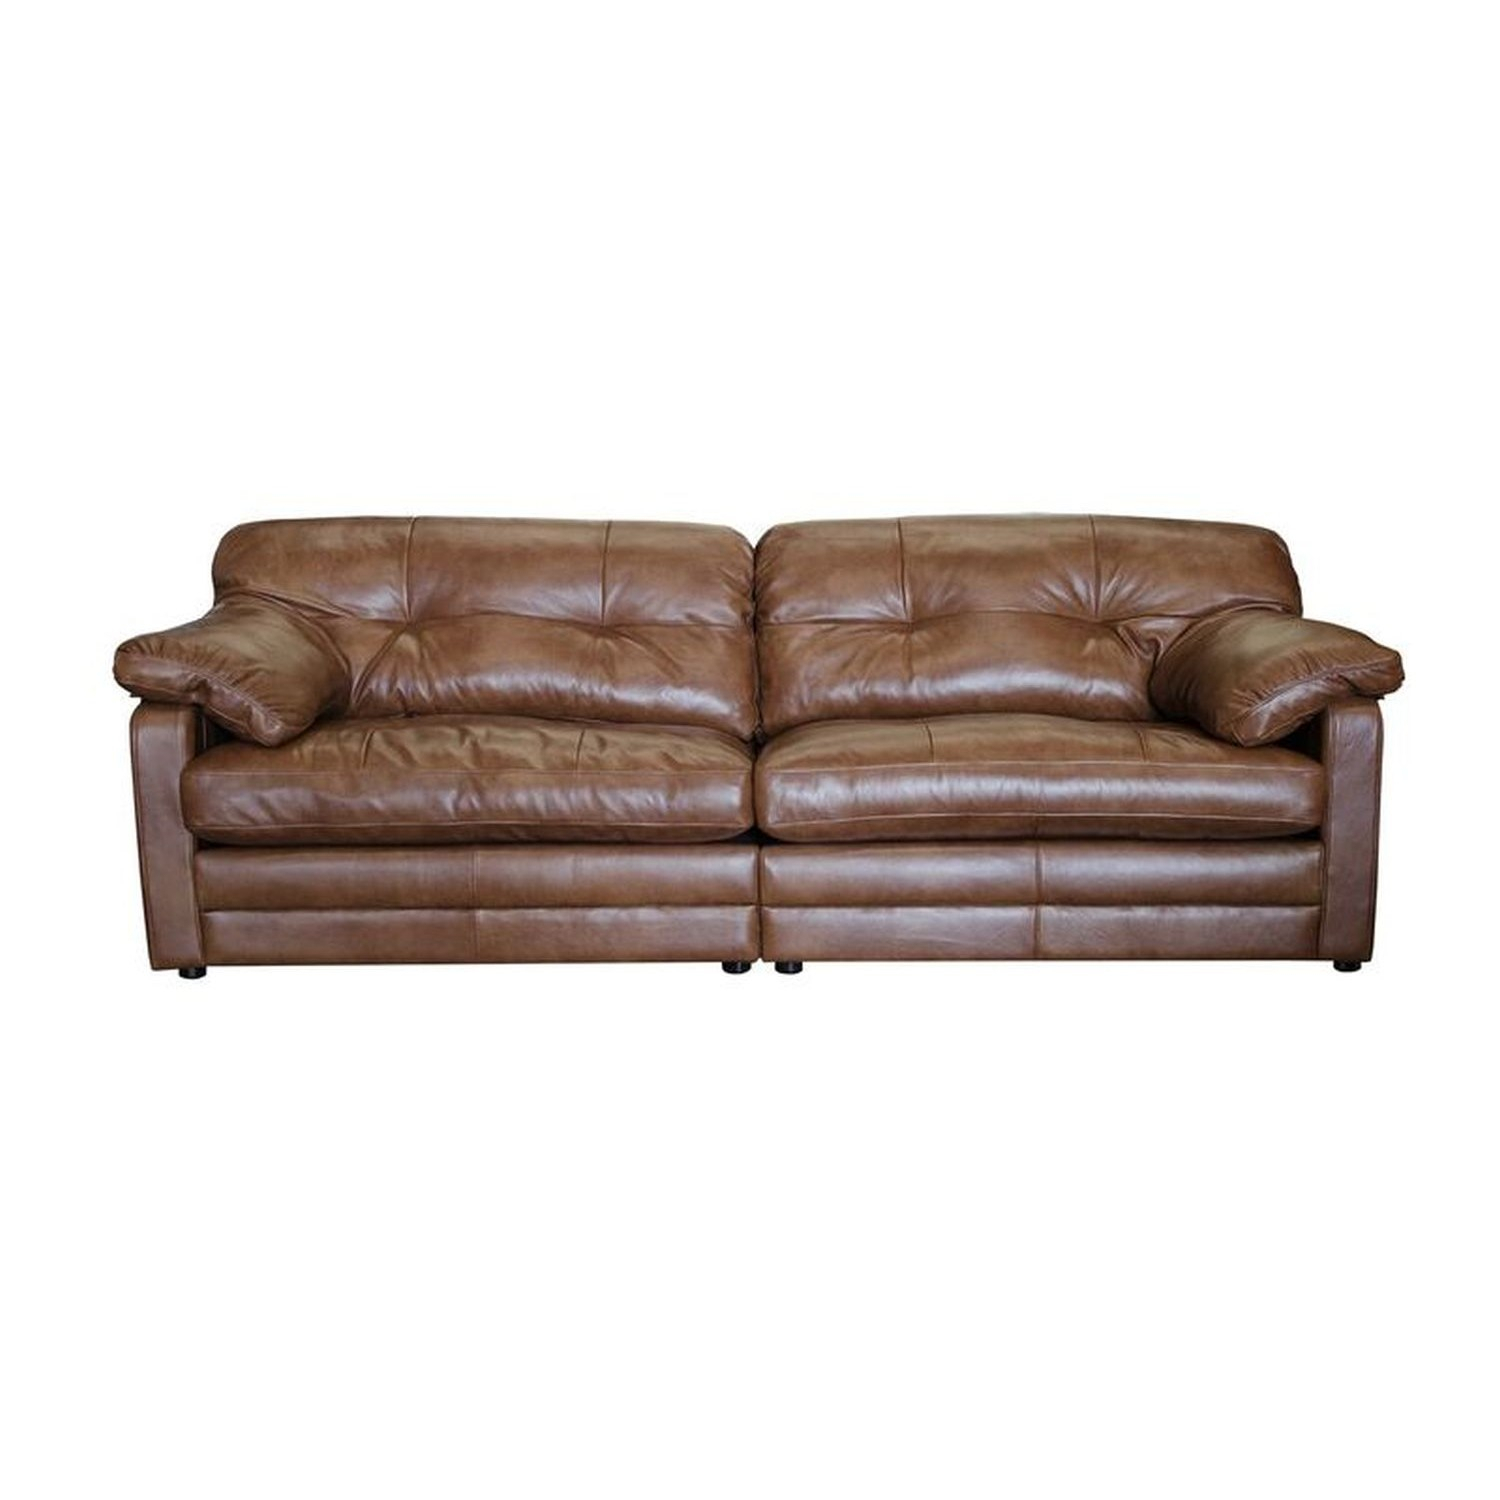 Alexander & James Bailey 4 Seater Split Leather Sofa With Regard To 4 Seat Leather Sofas (View 13 of 15)